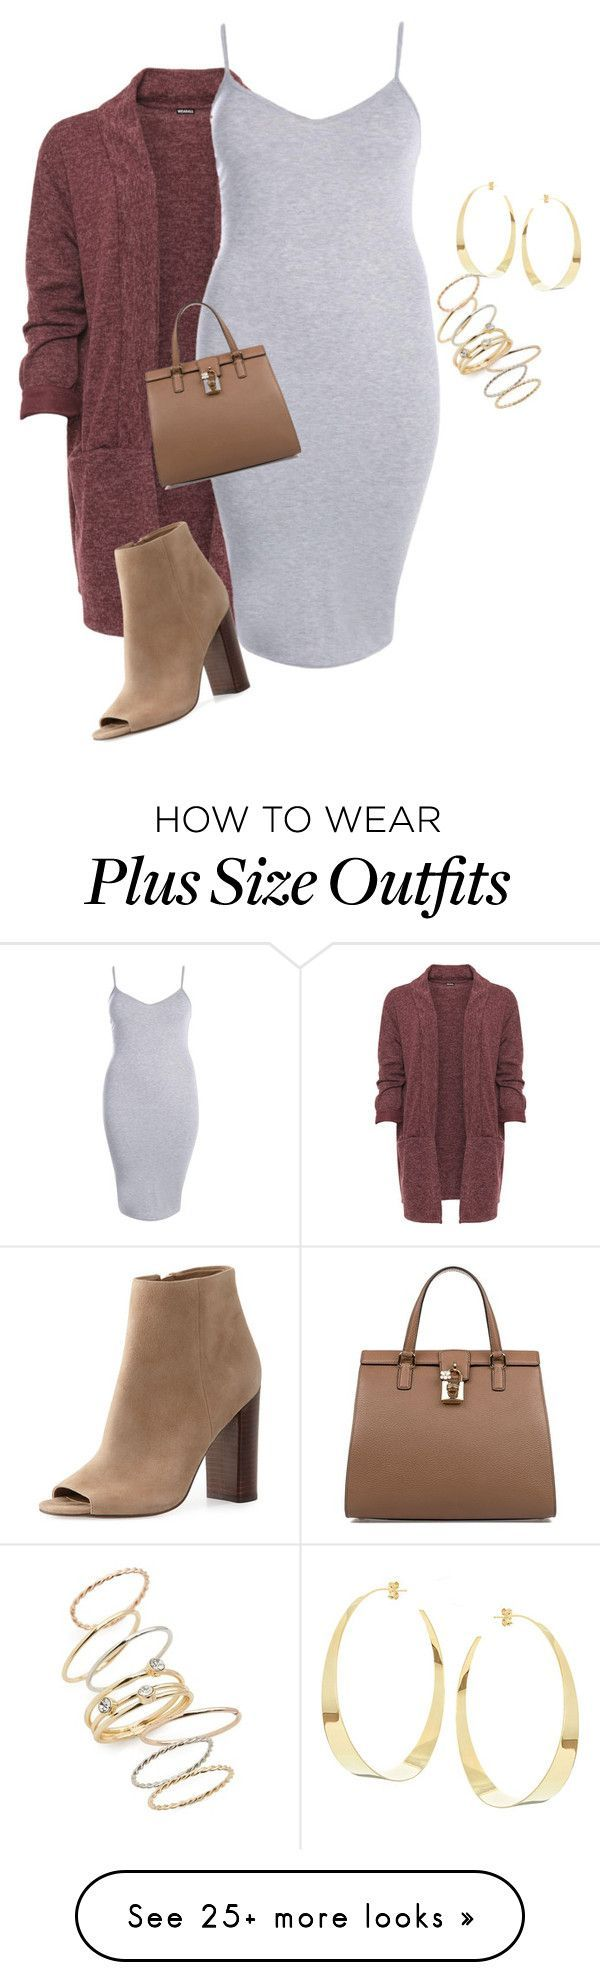 """""""Plus size casual chic fall/winter look"""" by xtrak on Polyvore featuring WearAll, Boohoo, Sam Edelman, Dolce&Gabbana, BP. and Lana"""